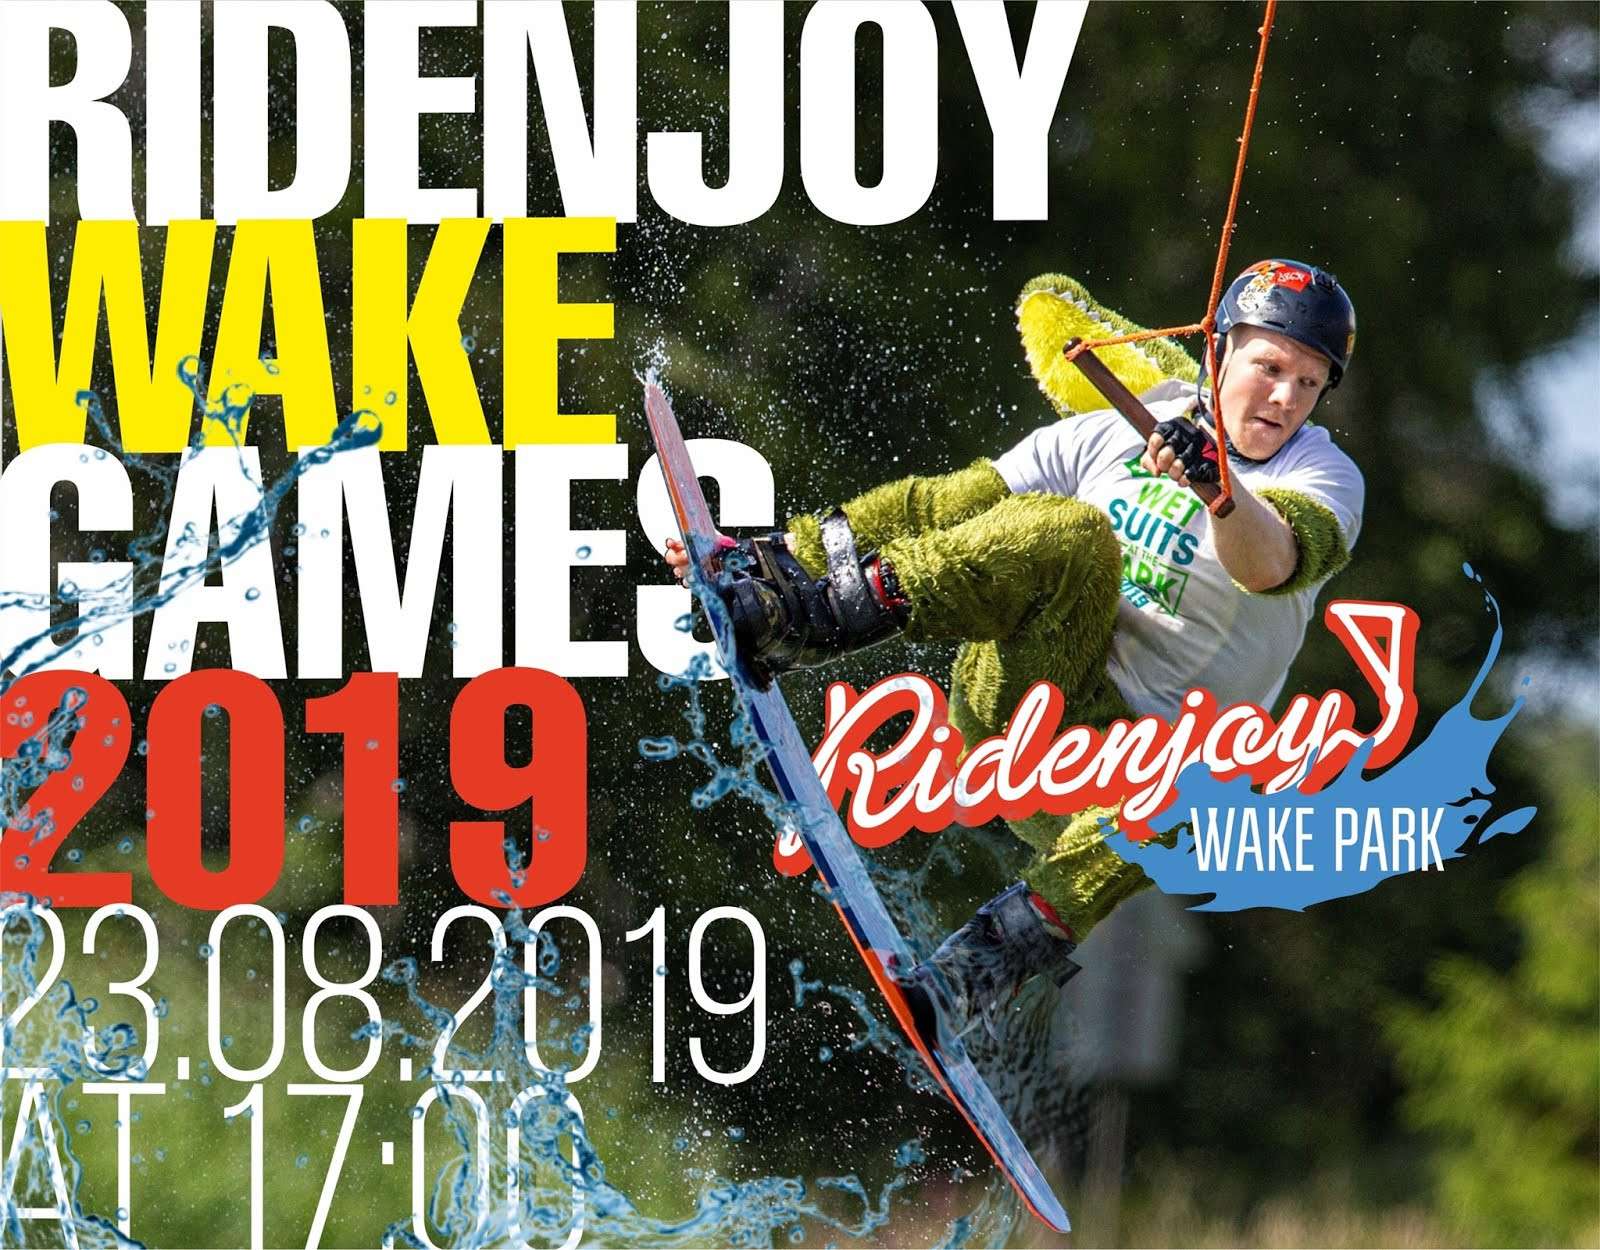 23.8. Ridenjoy WAKE GAMES